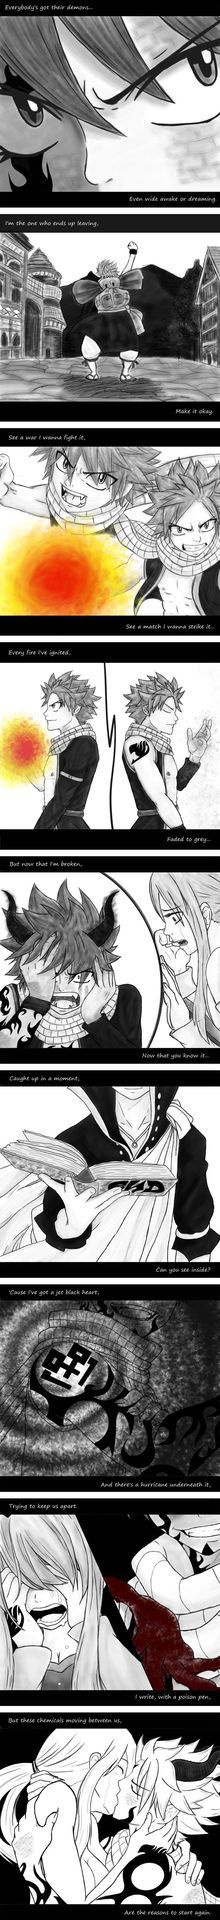 #wattpad #fanfiction A bunch of NALU one shots!!  No, I am not stealing anyones ideas, these were originally my stories on a different account. They're exactly the same.